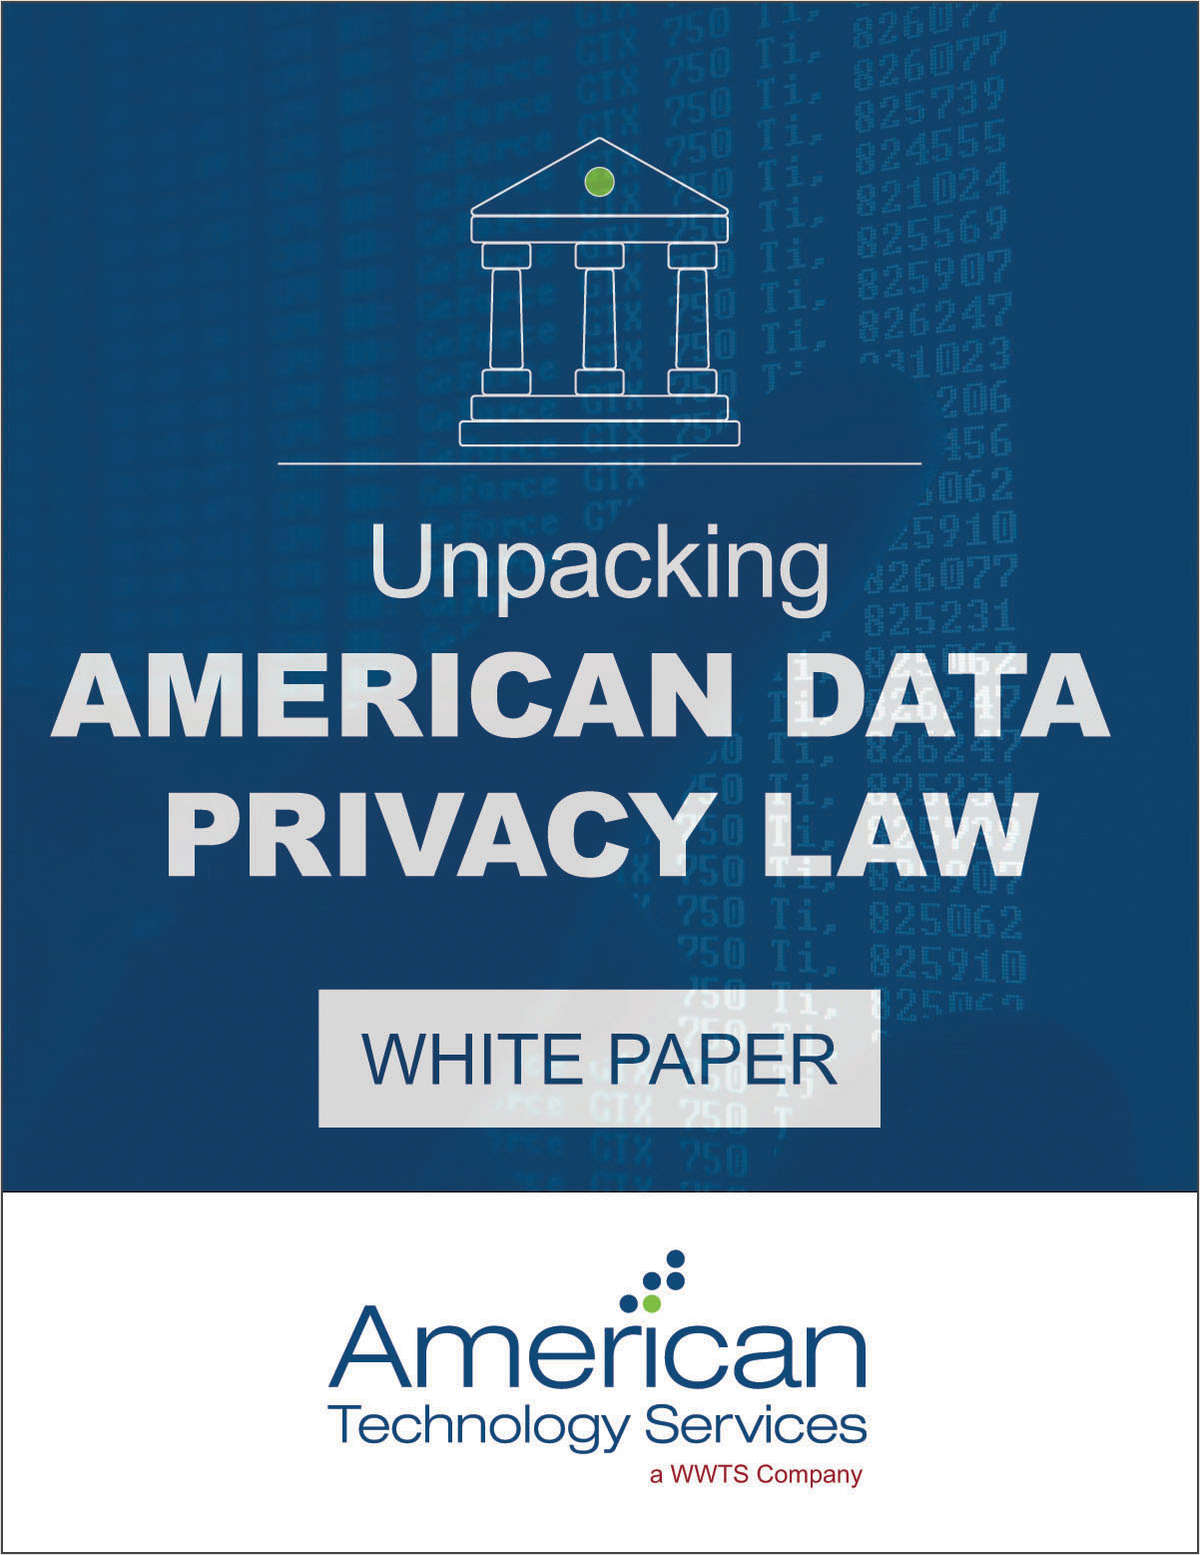 Unpacking American Data Privacy Law